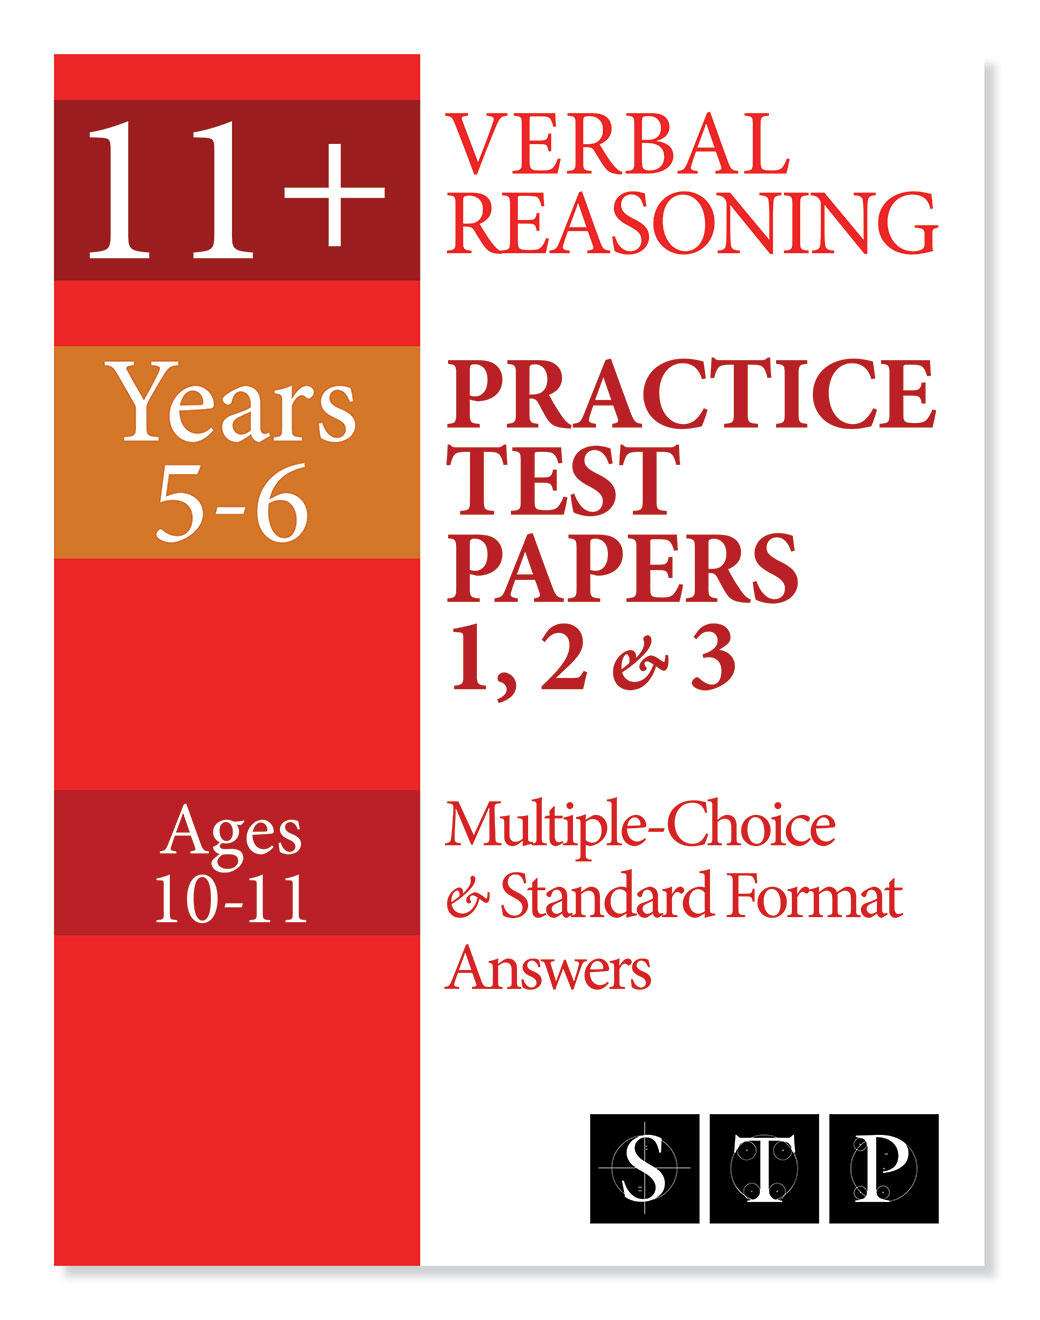 STP Books 11+ Verbal Reasoning Practice Test Papers 1, 2 & 3: Multiple-Choice and Standard Format Answers (Years 5-6: Ages 10-11)